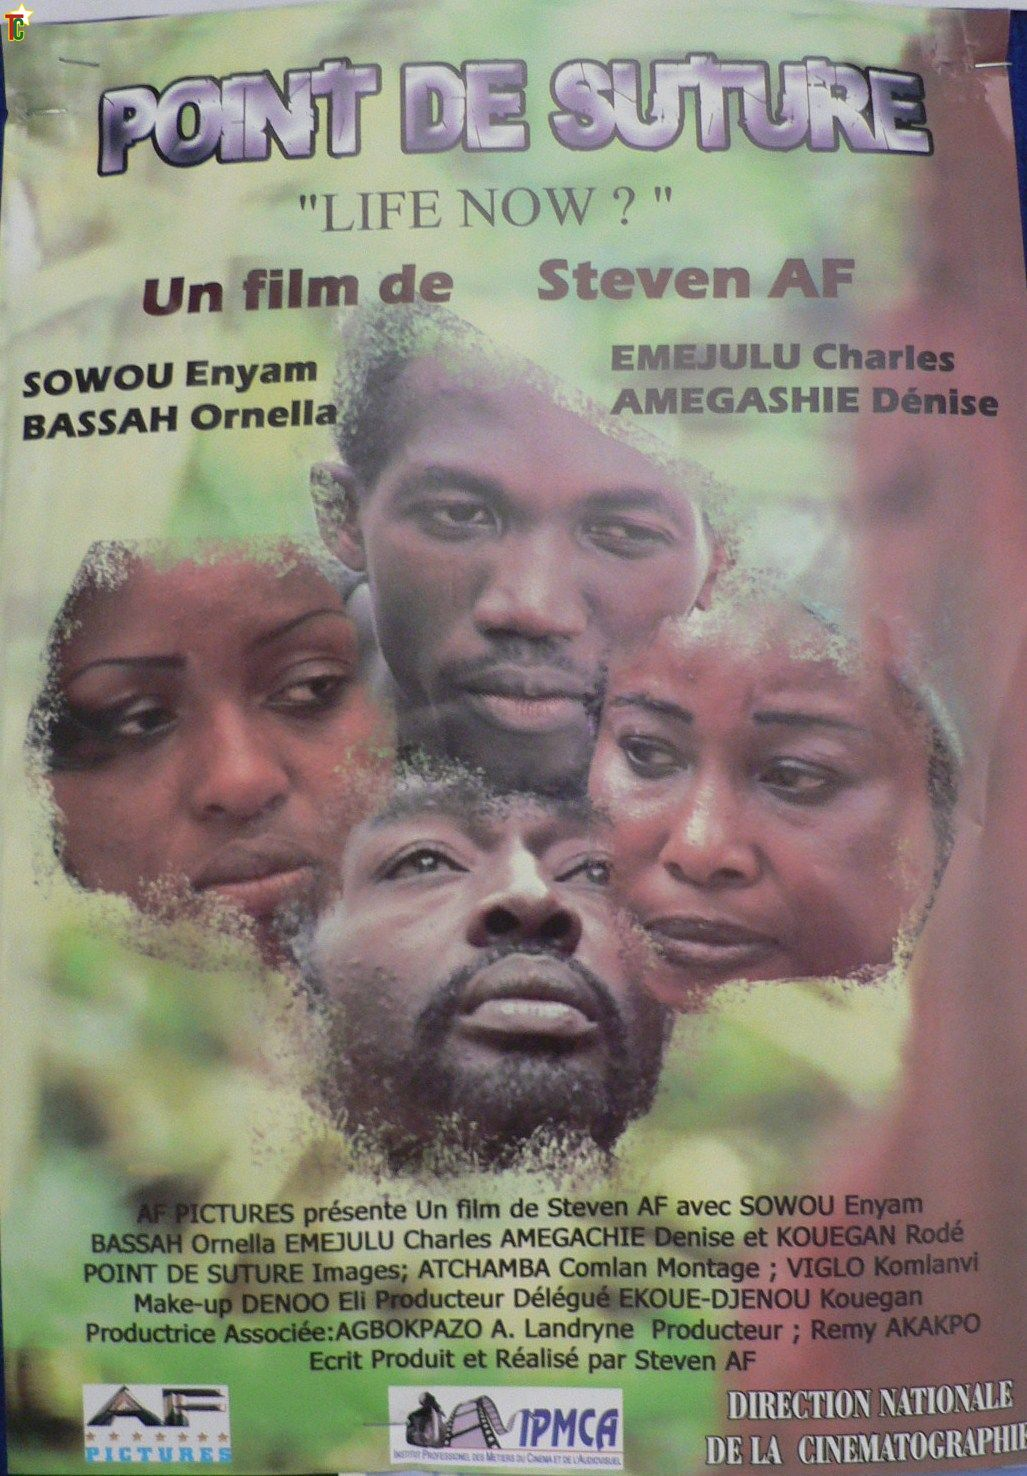 Une participation record du Togo au FESPACO 2009